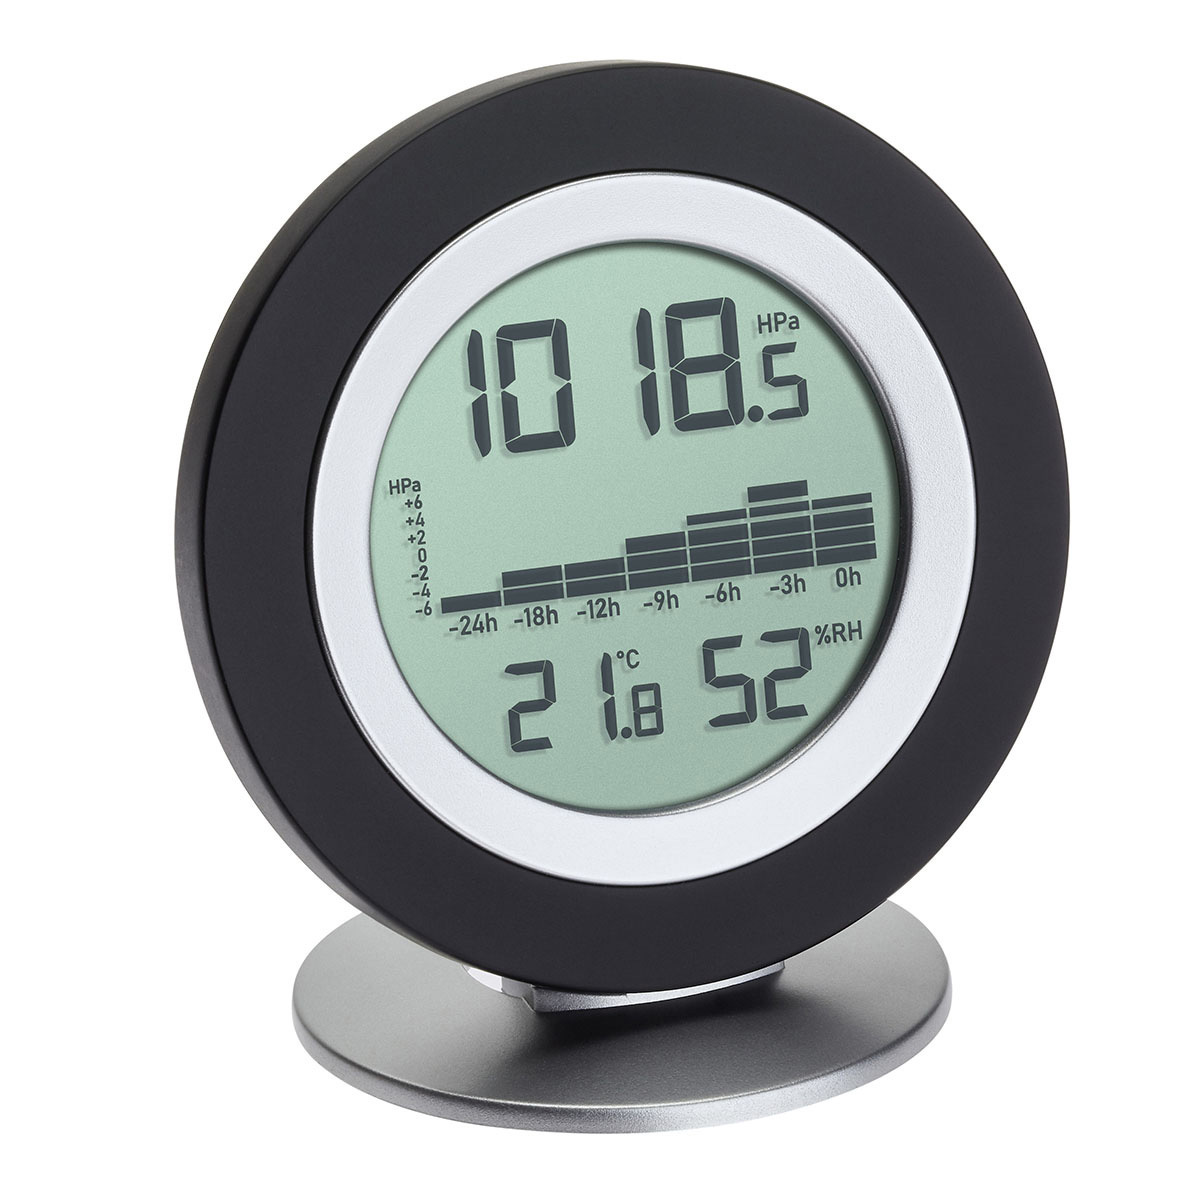 35-1154-01-digitales-barometer-thermometer-hygrometer-cosy-baro-1200x1200px.jpg